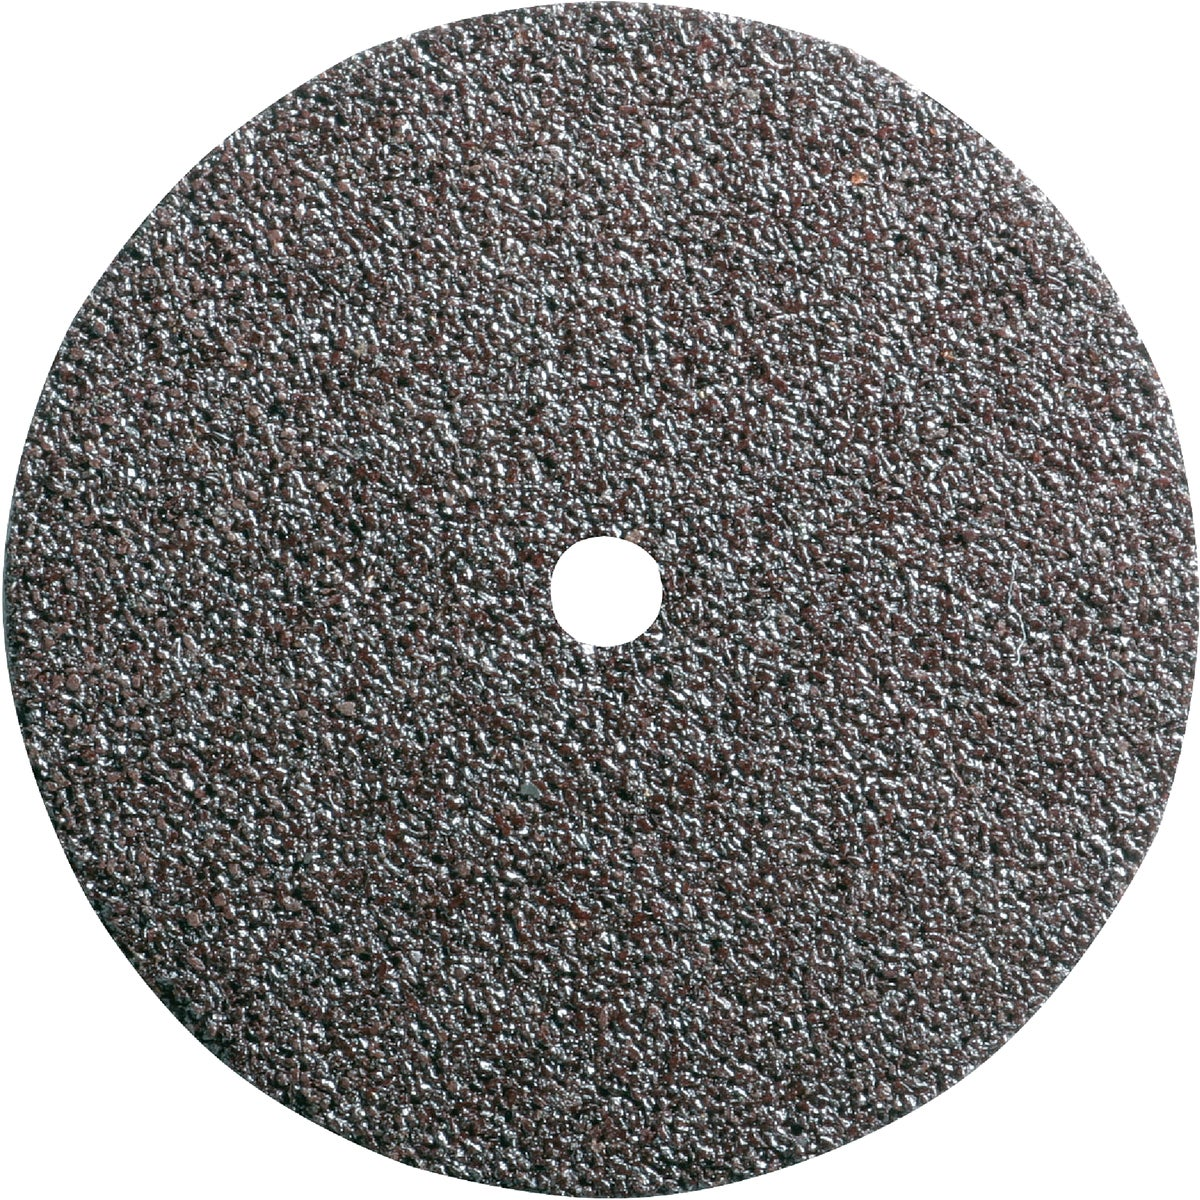 ALUM OXID GRINDING WHEEL - 541 by Dremel Mfg Co